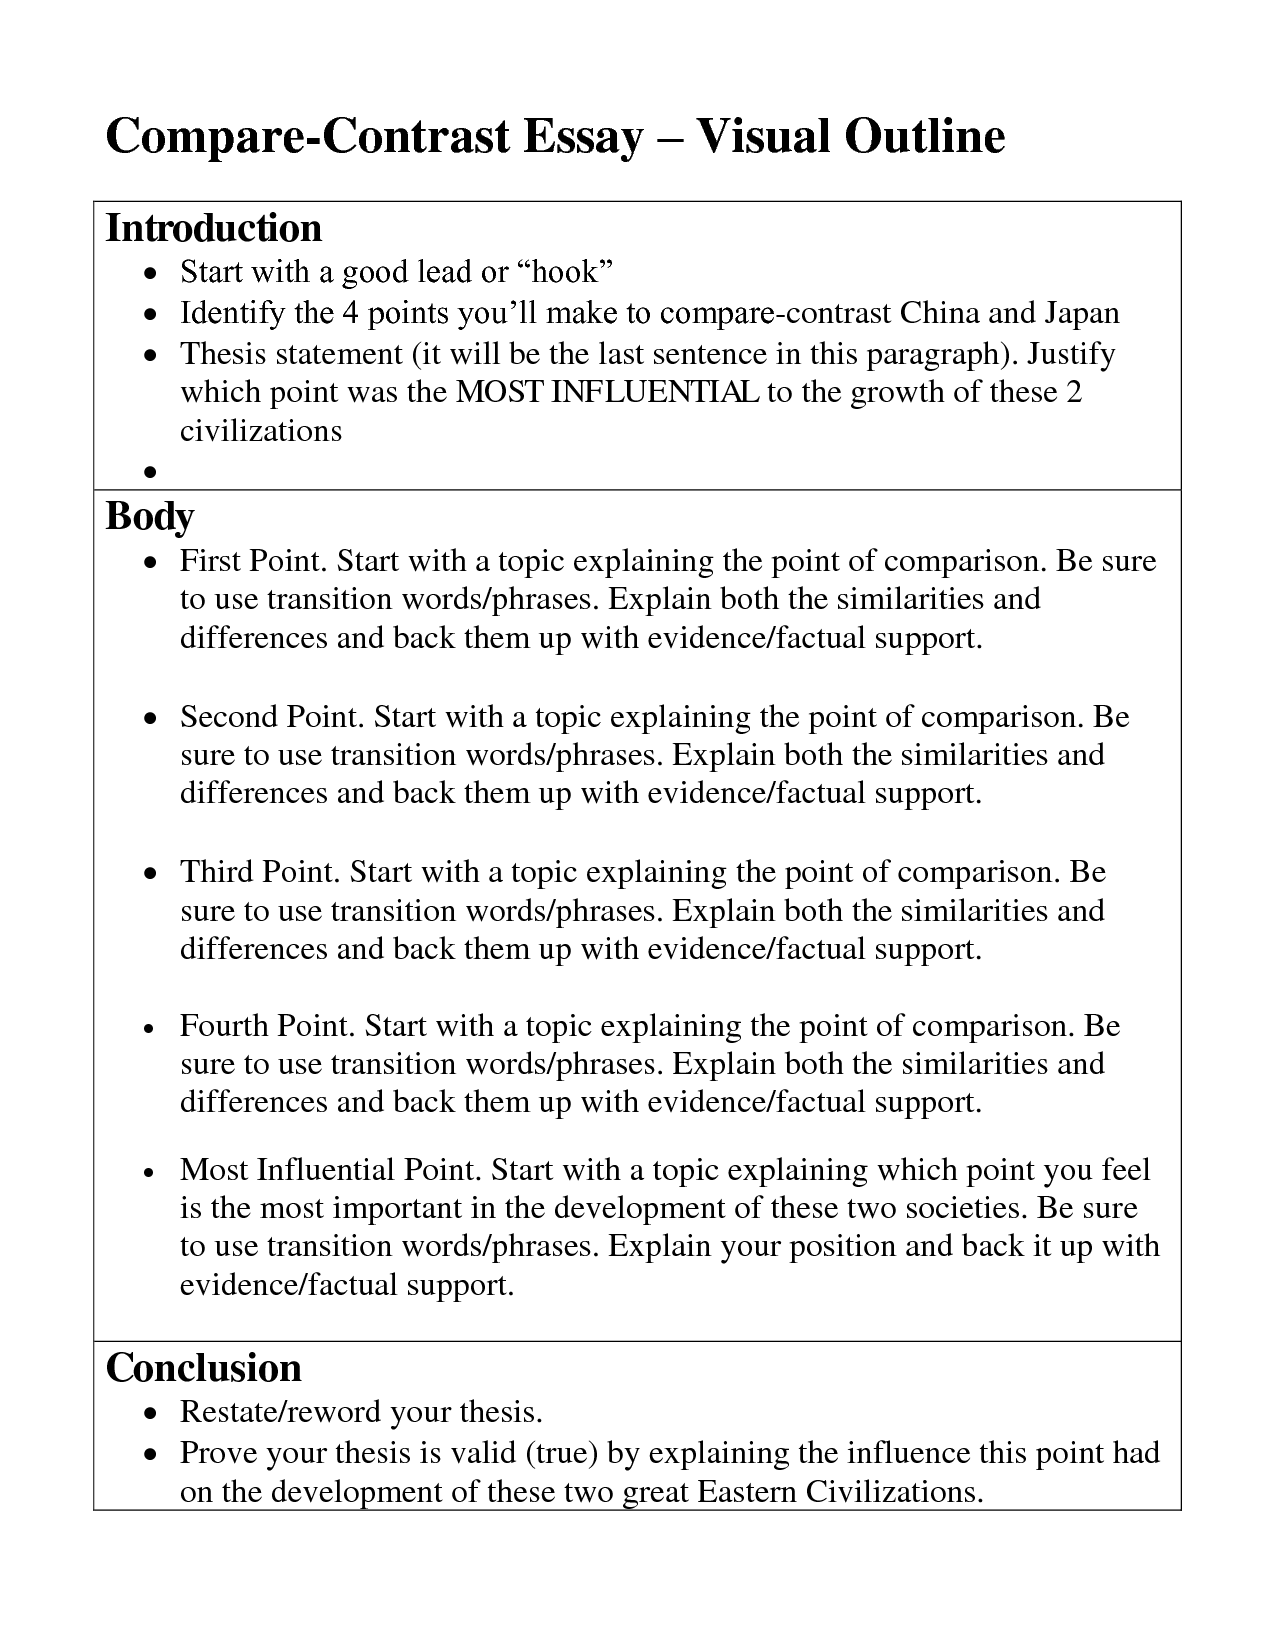 005 How To Write Compare And Contrast Essay Outstanding A Outline Powerpoint Introduction Full